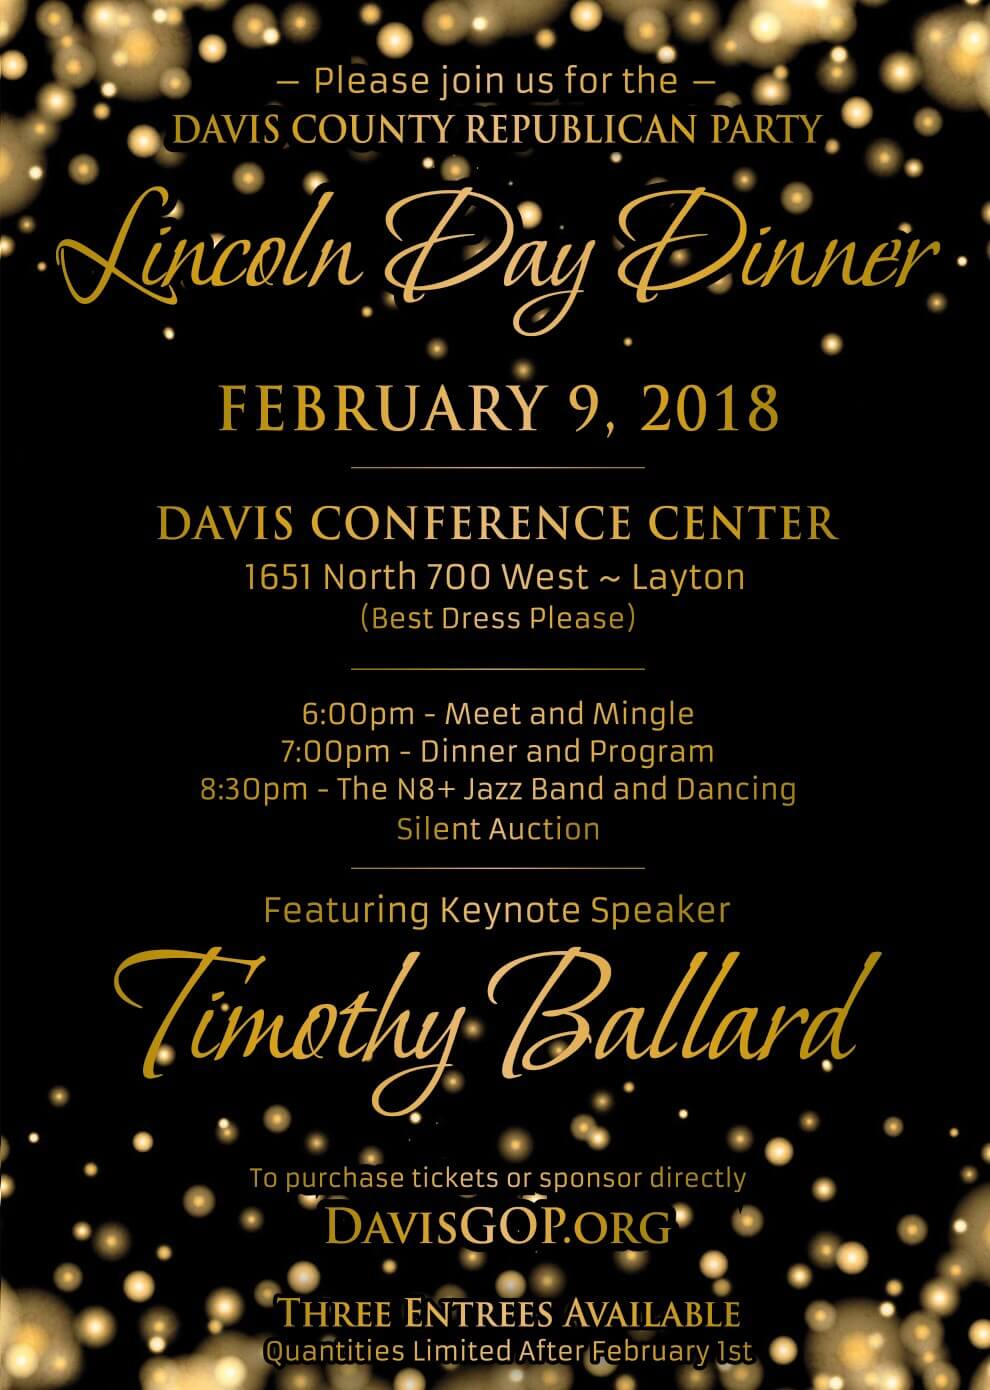 2018 Lincoln Day Dinner